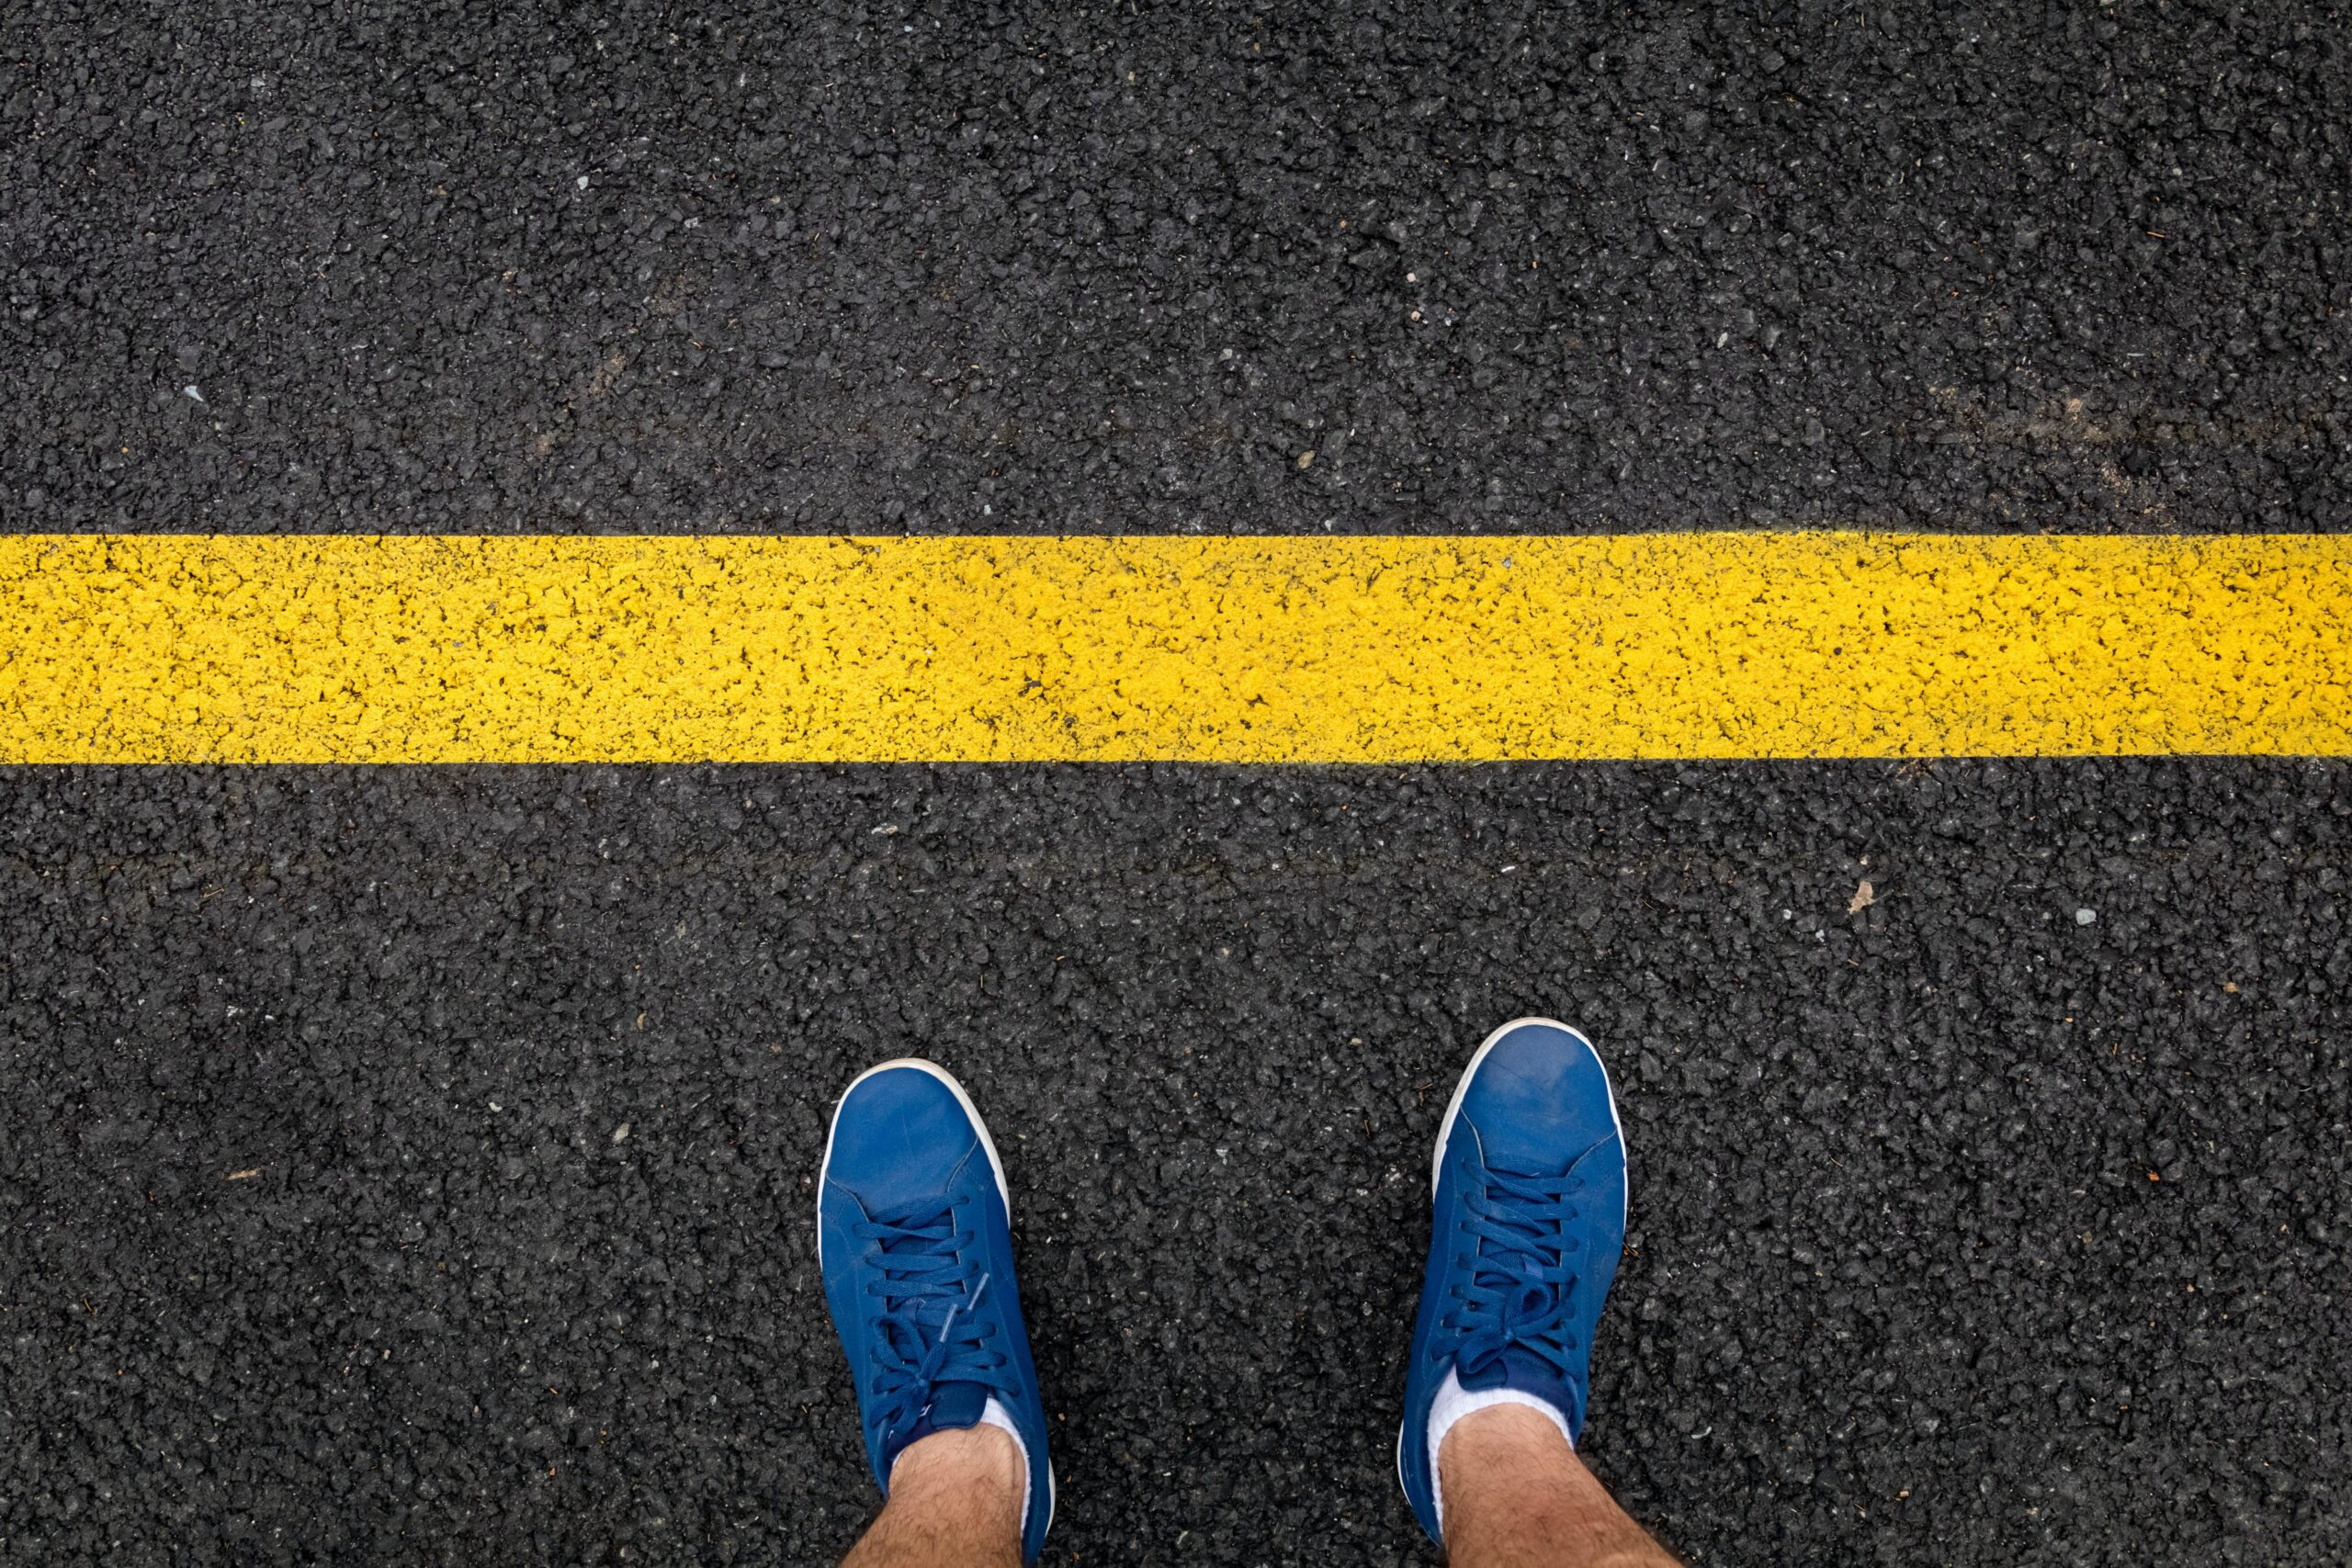 Overhead of someone's feet standing in front of a big yellow line painted onto the road